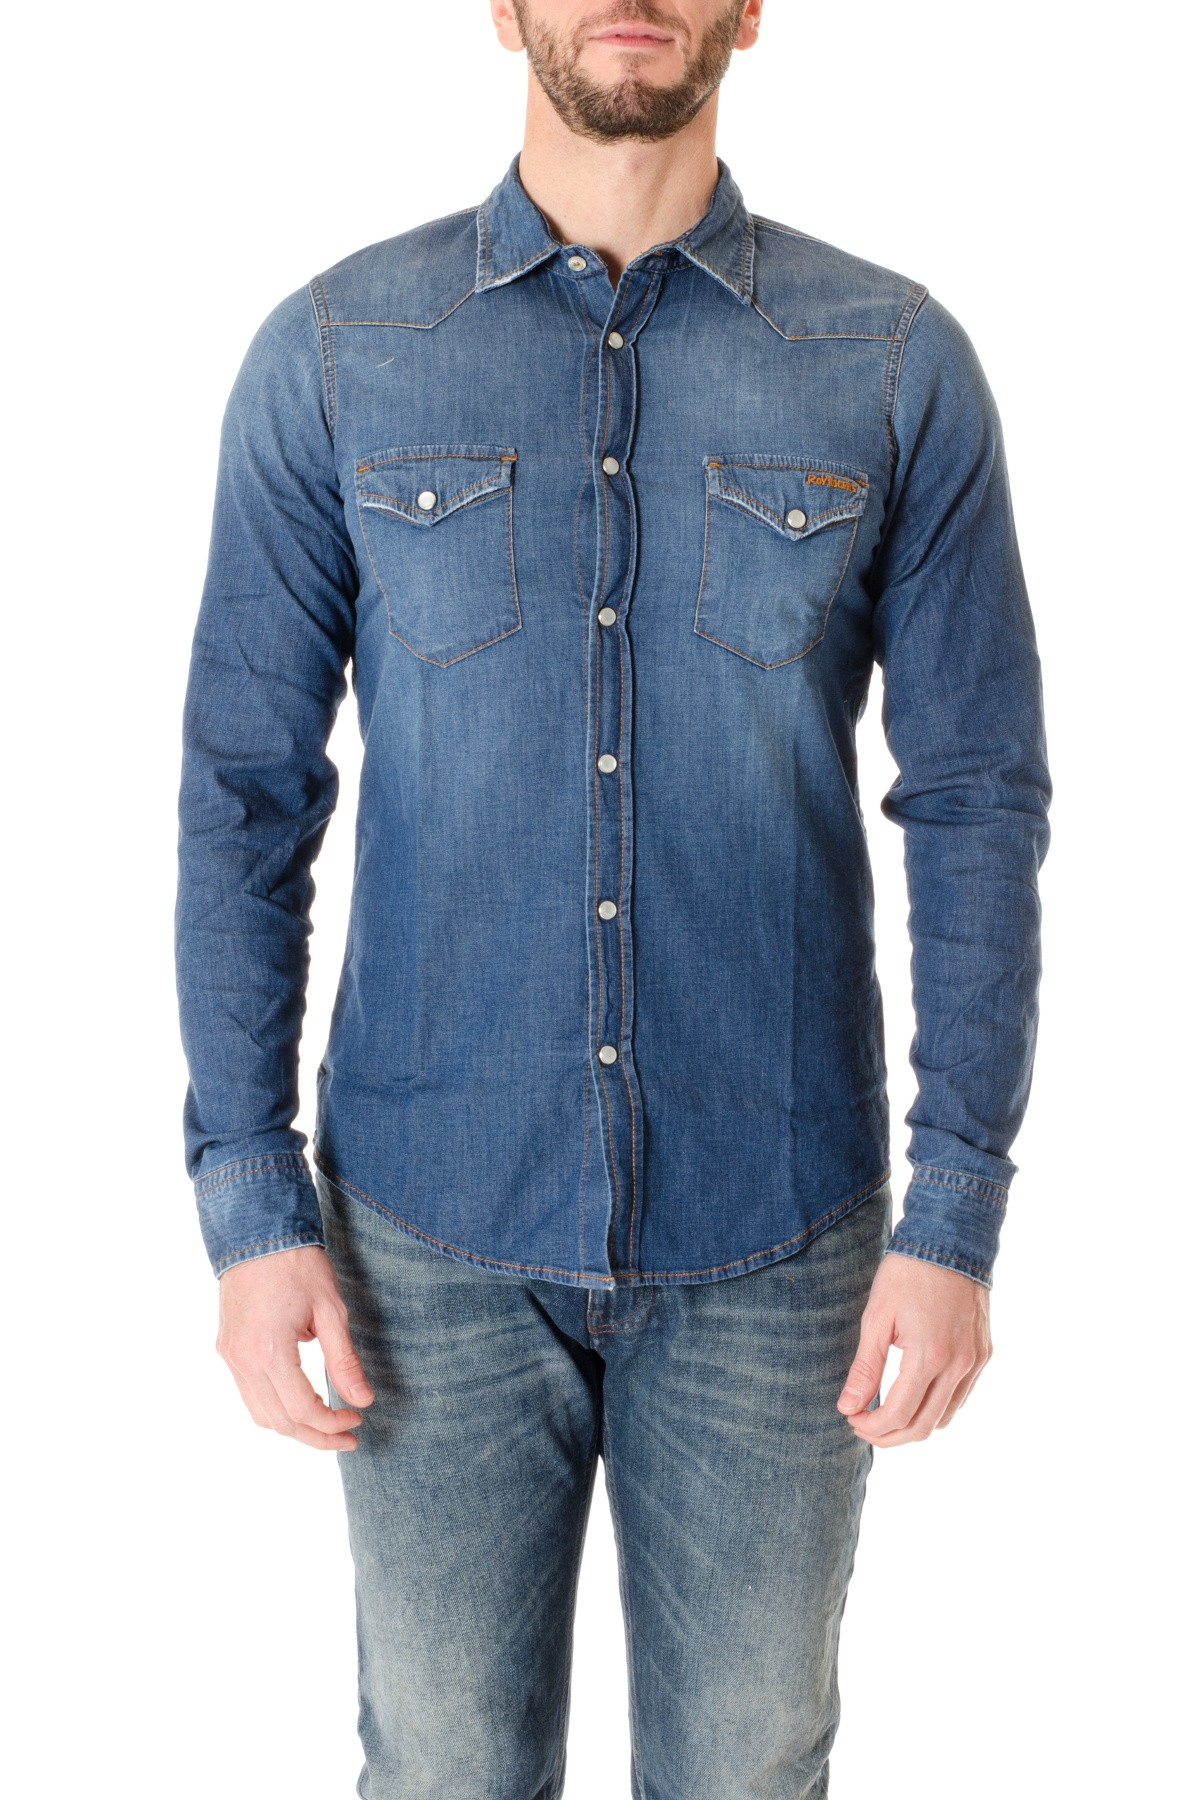 43b24038fc Shirt DENIM for men ROY ROGER S - Rione Fontana